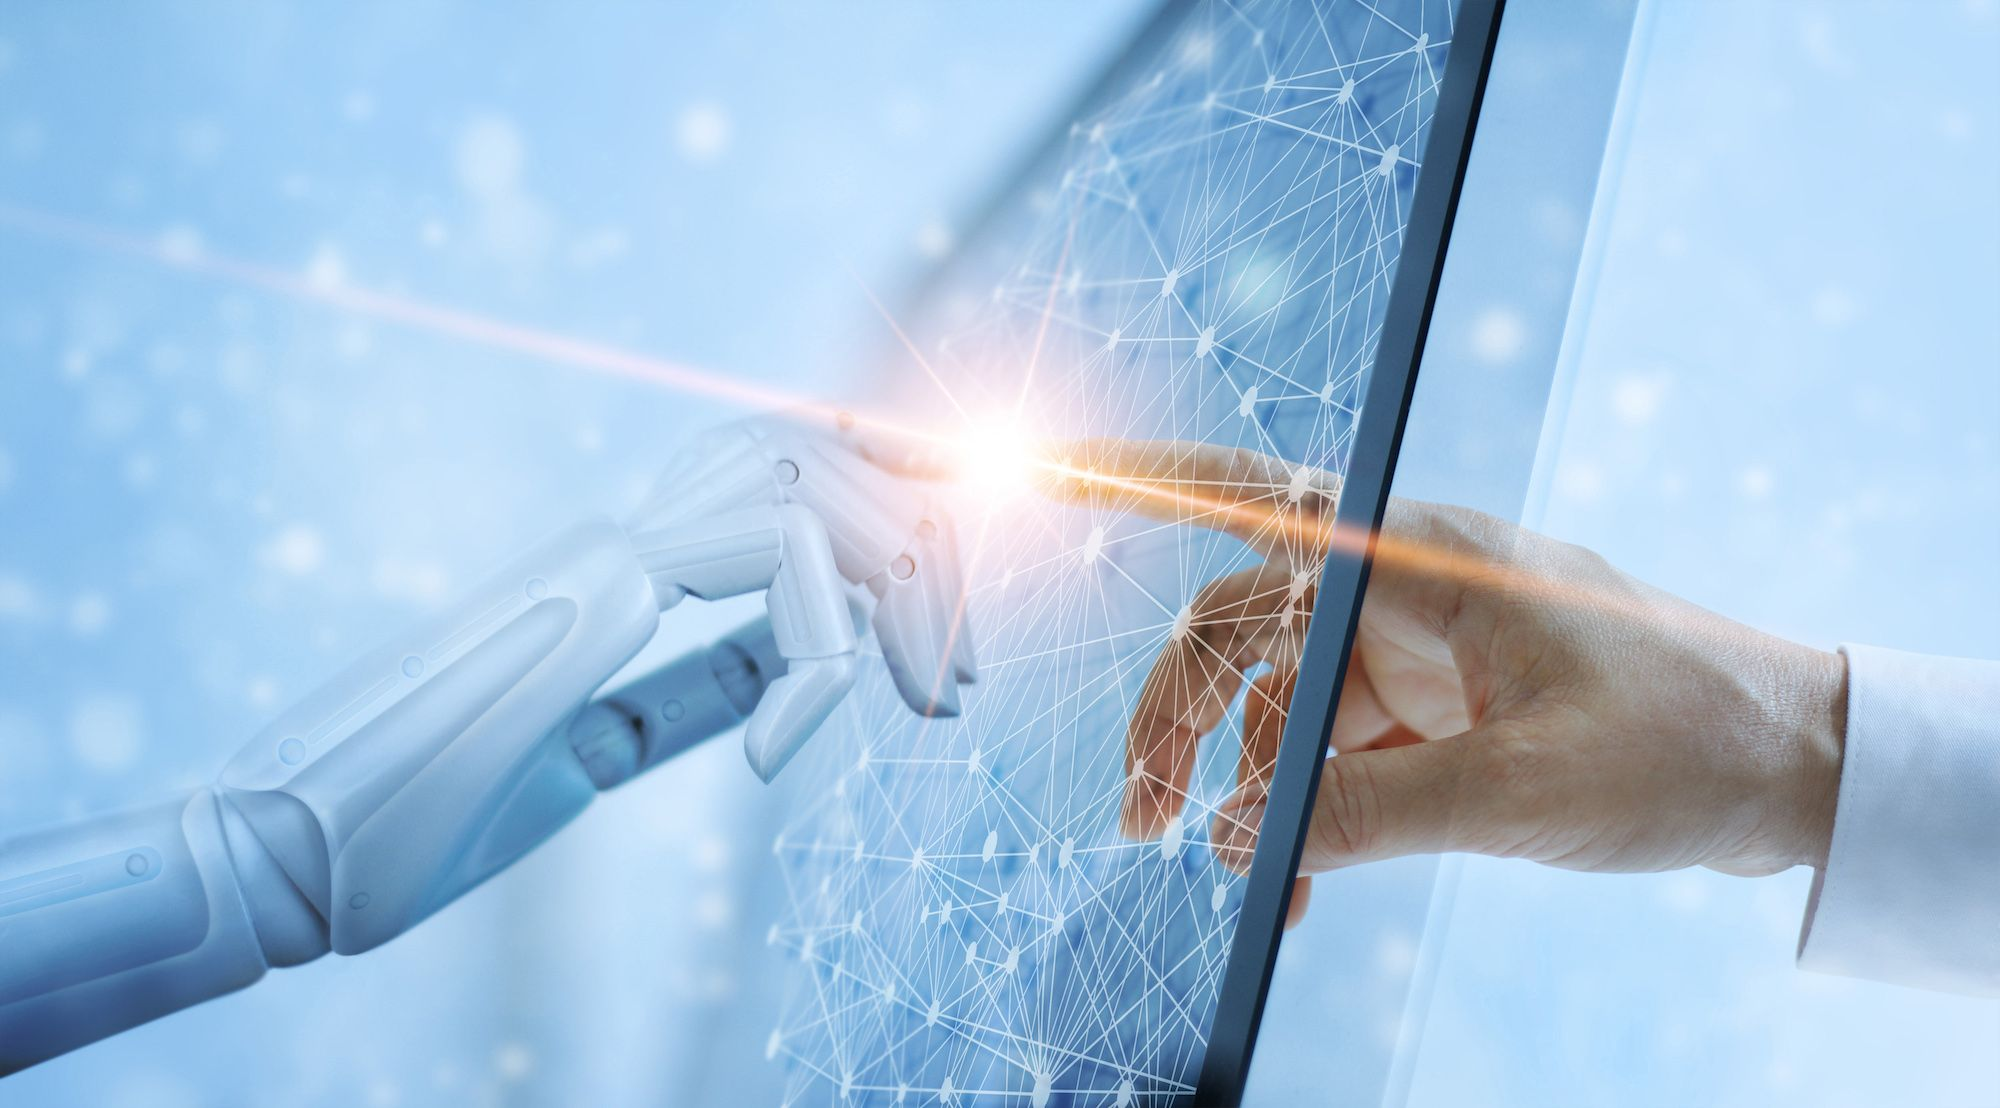 hands-of-robot-and-human-touching-on-global-virtual-network-connection-future-interface.jpg